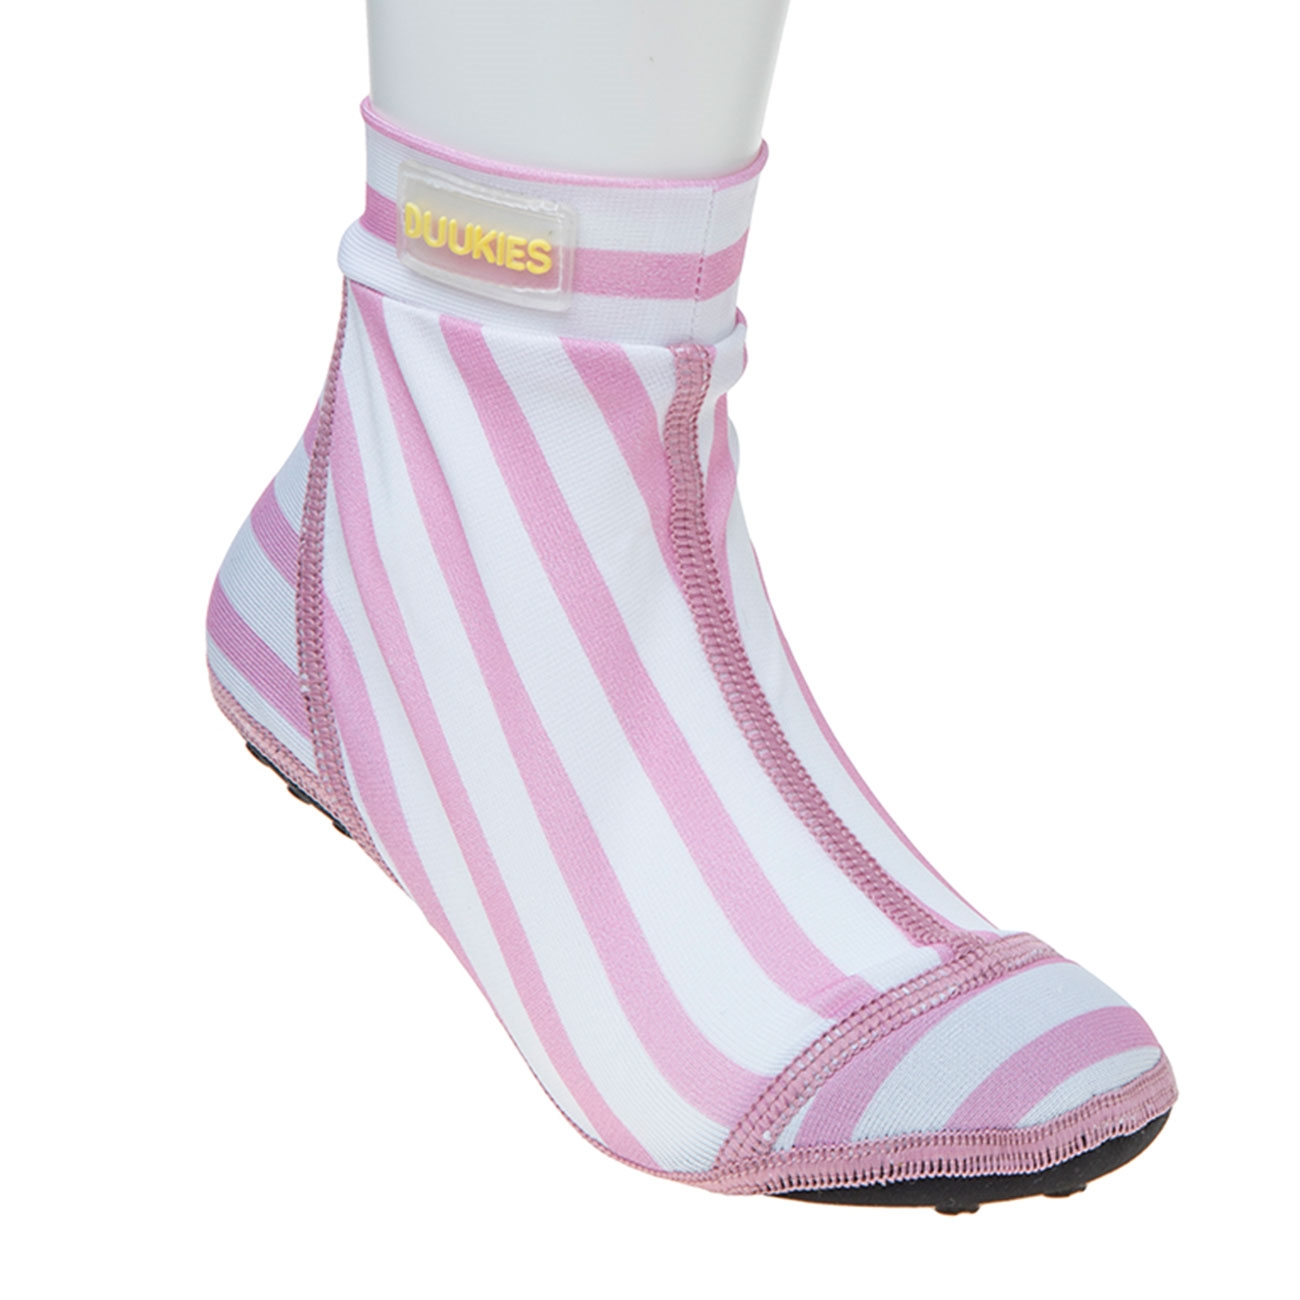 duukies-badesokker-beachsocks-pink-stripes-25spw-1